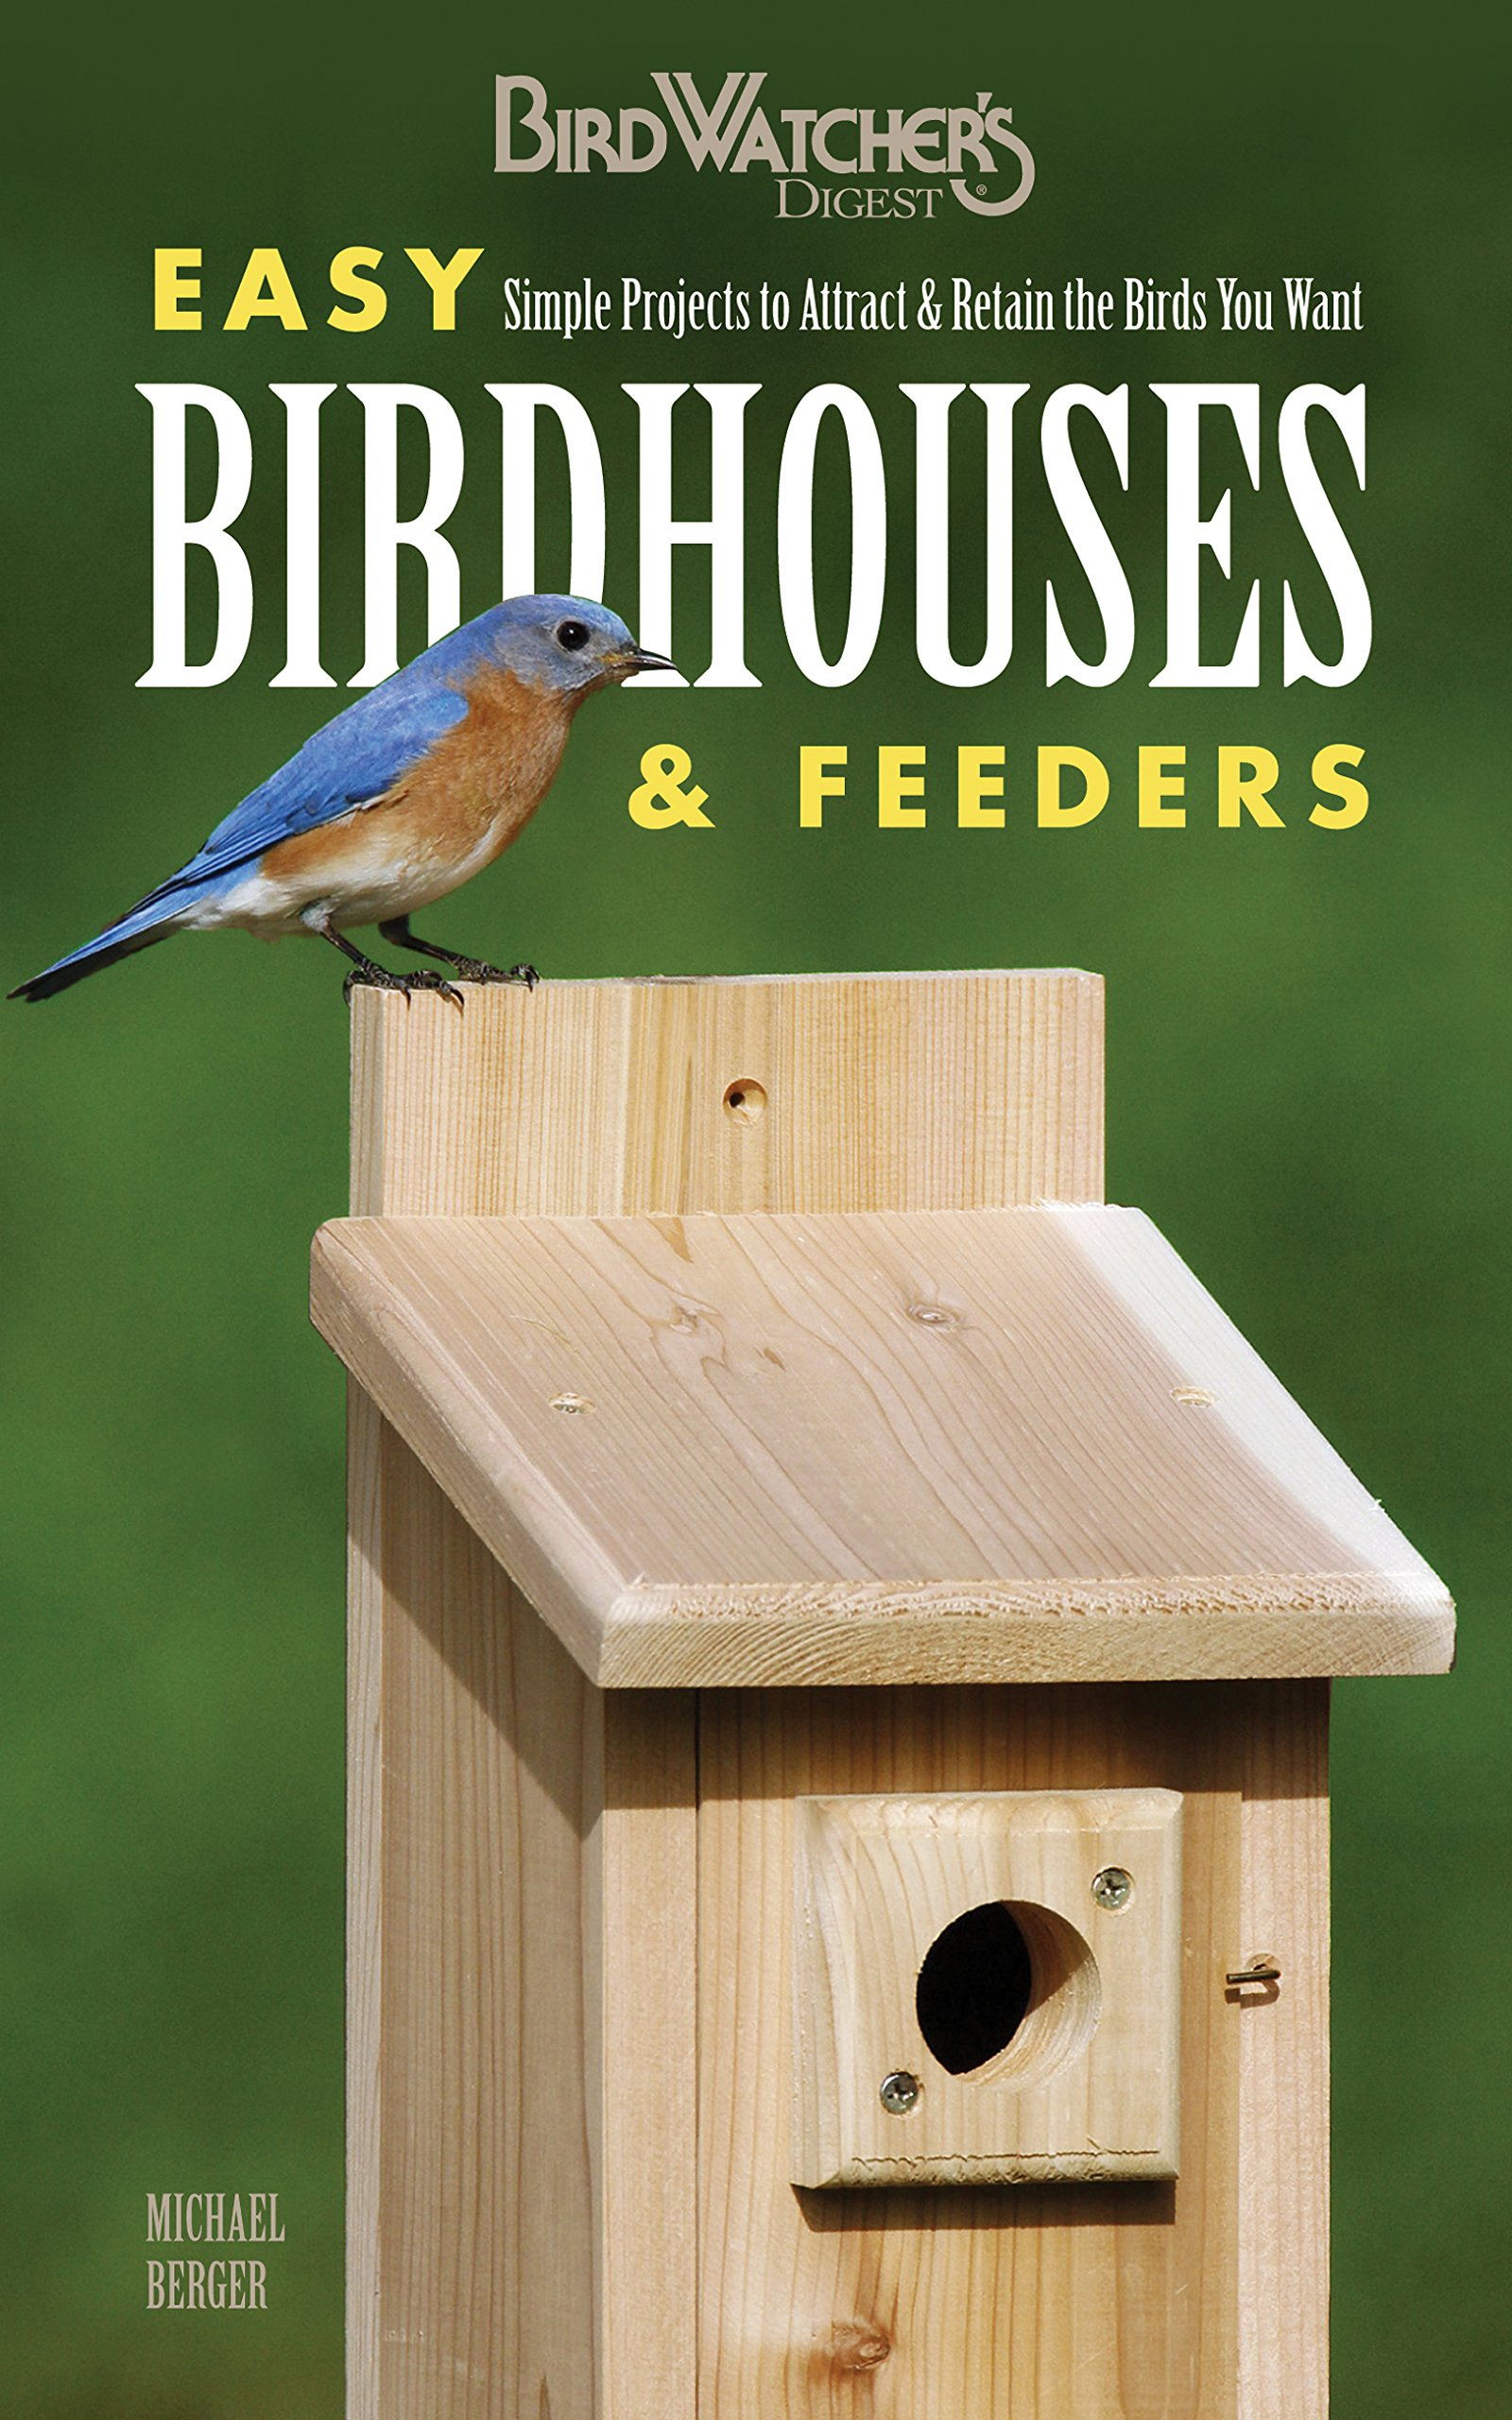 Easy Birdhouses & Feeders: Simple Projects to Attract & Retain the Birds You Want (Birdwatcher's Digest)